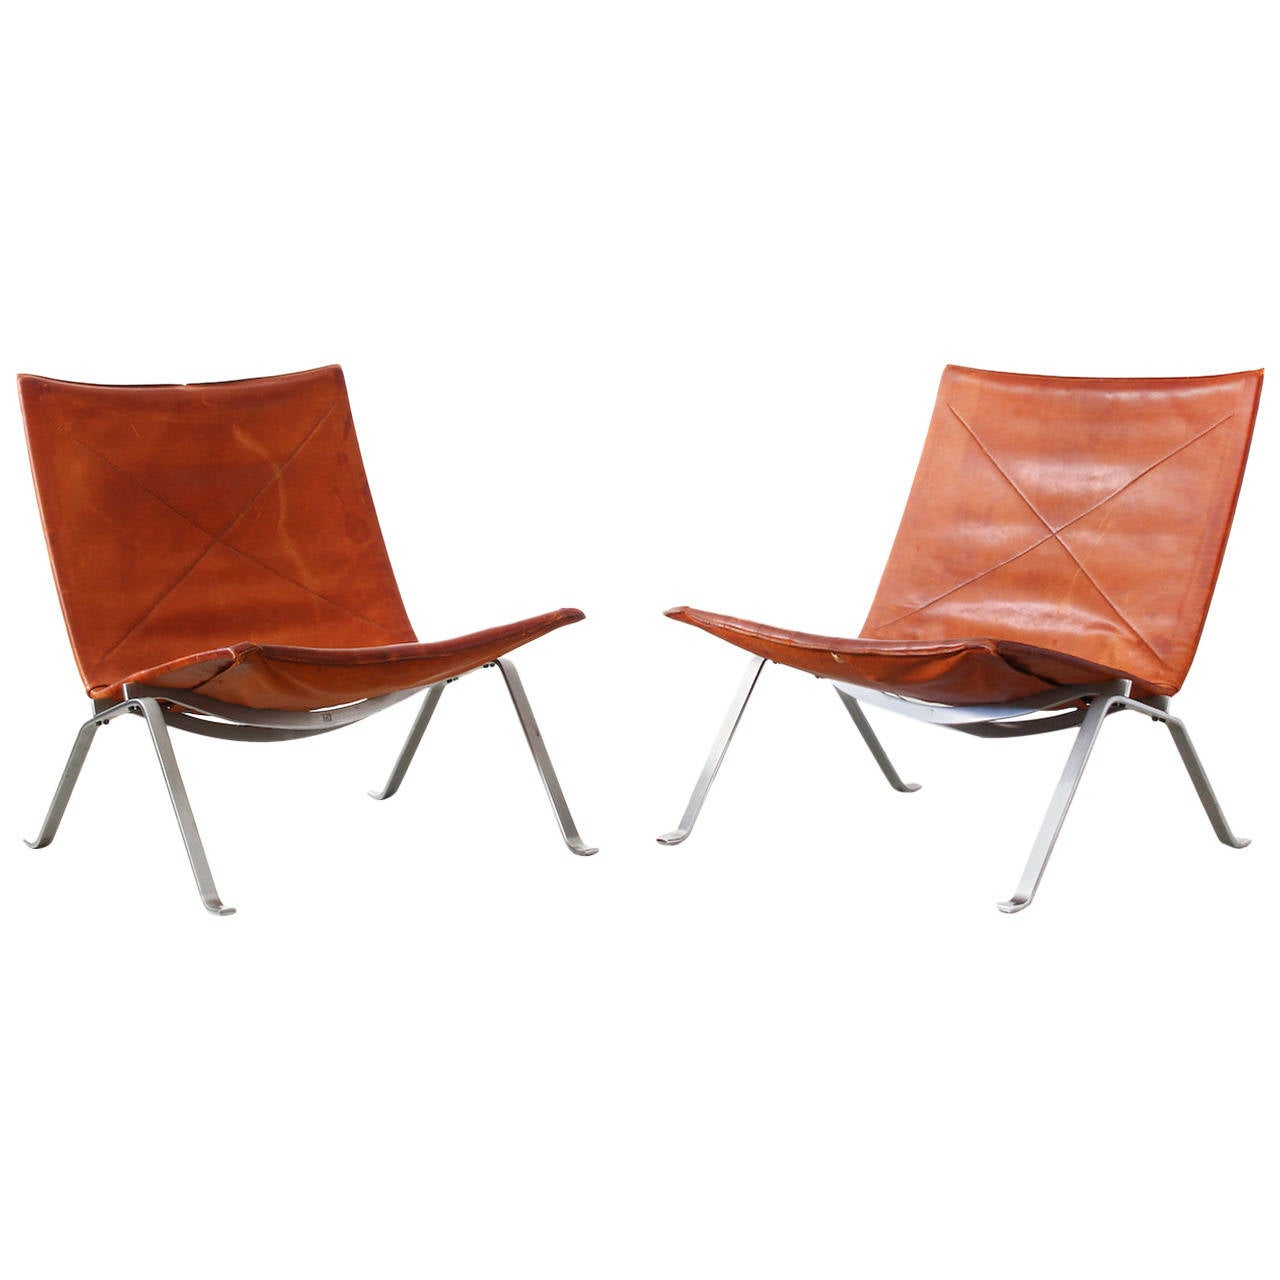 Lounge Chairs PK22 By Poul Kjaerholm For E Kold Christensen At 1stdibs